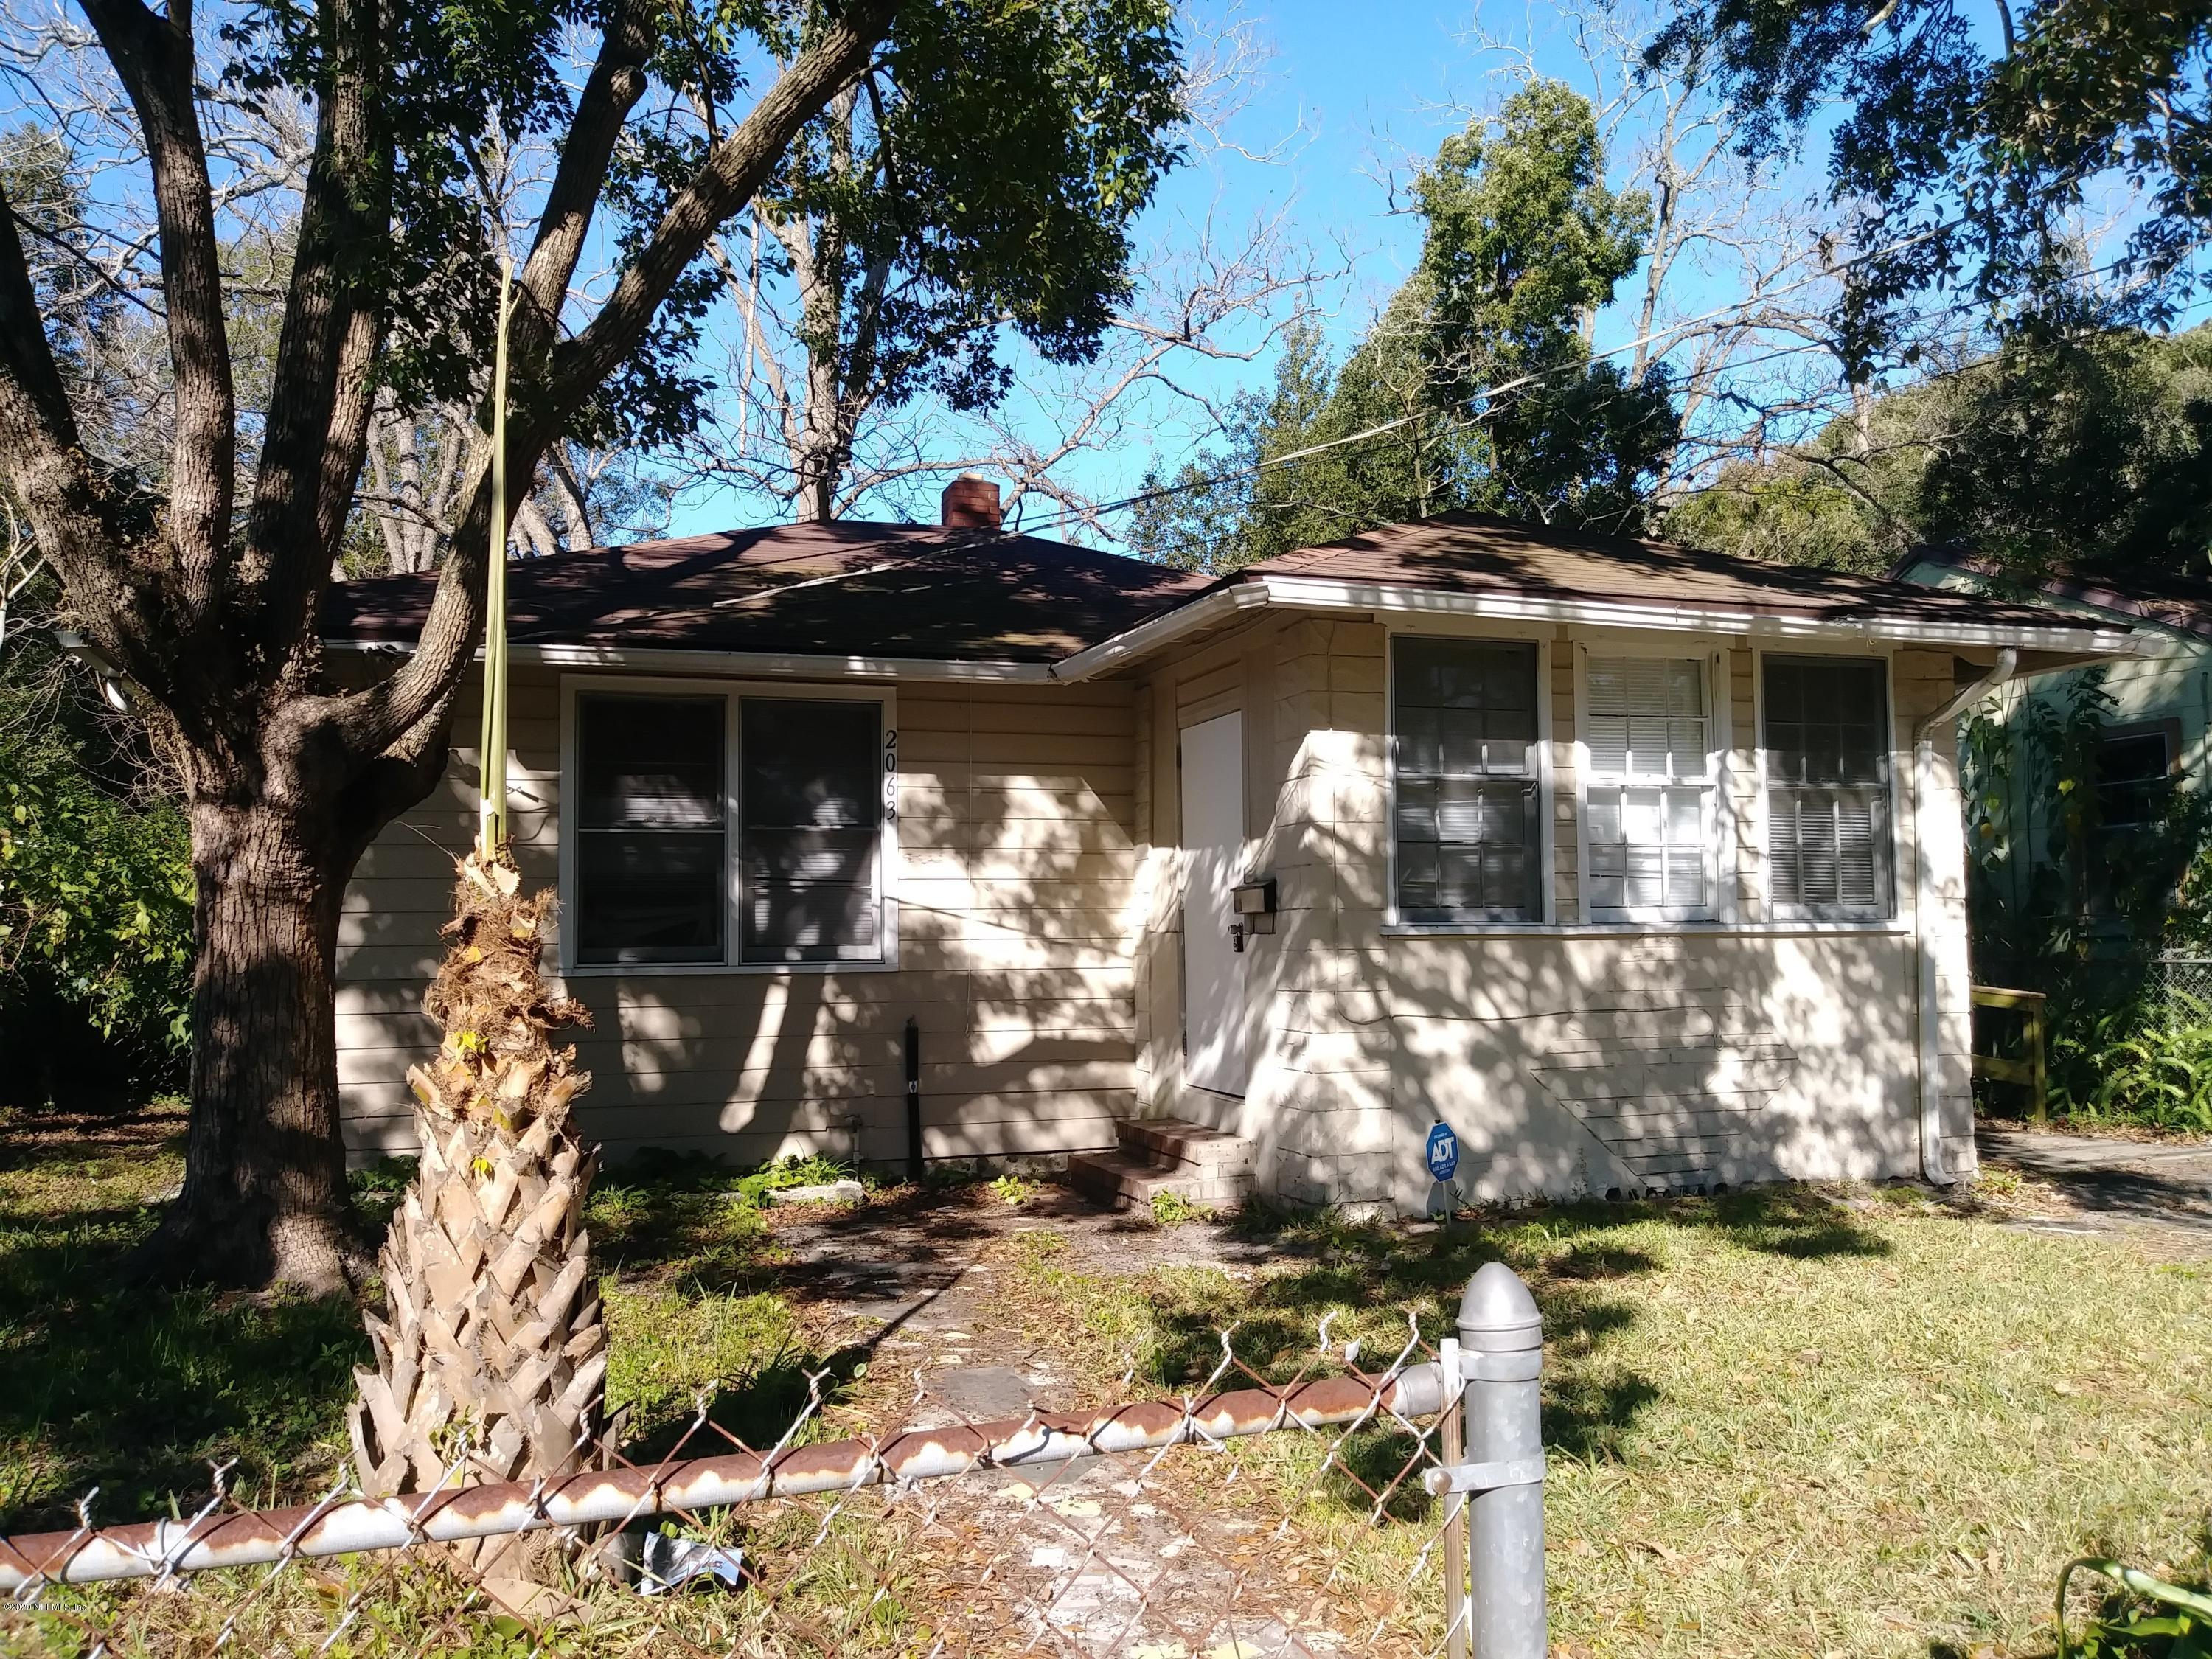 2063 17TH, JACKSONVILLE, FLORIDA 32209, 2 Bedrooms Bedrooms, ,1 BathroomBathrooms,Investment / MultiFamily,For sale,17TH,1052184